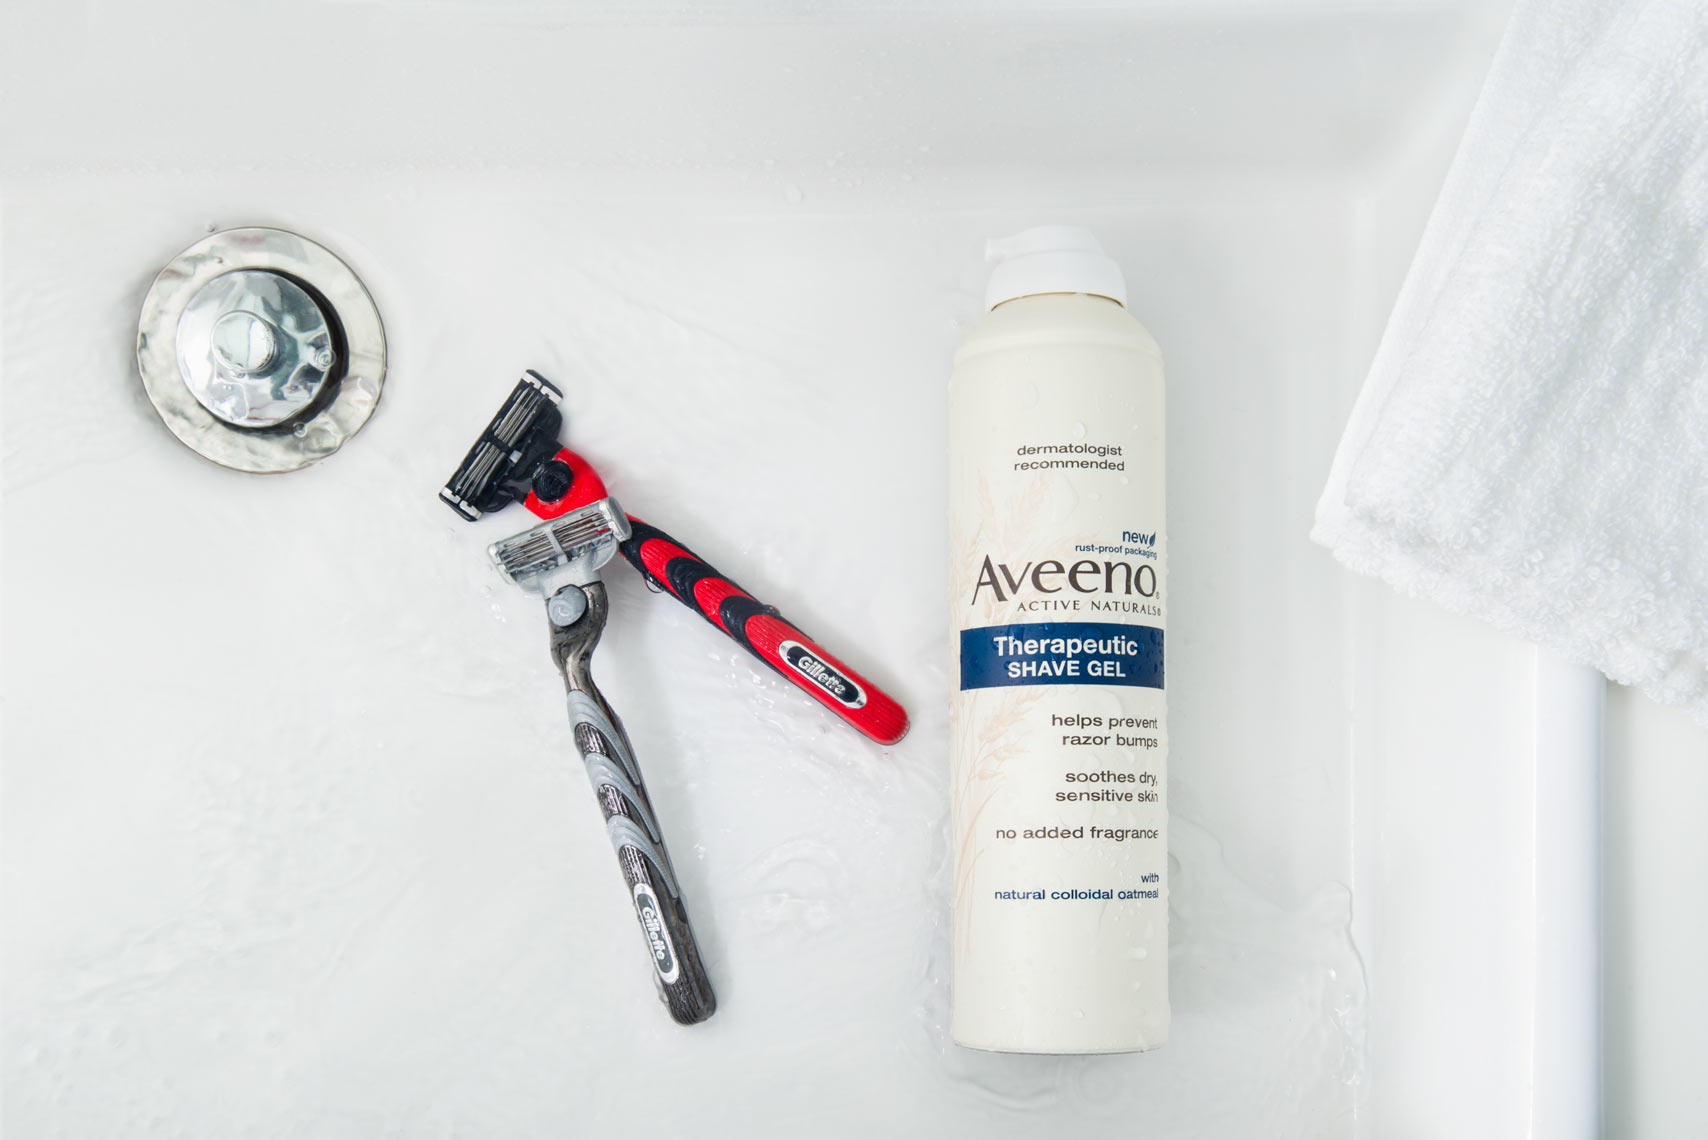 Gilette_Razors_with_Aveeno_Shave_Cream_and_Towel